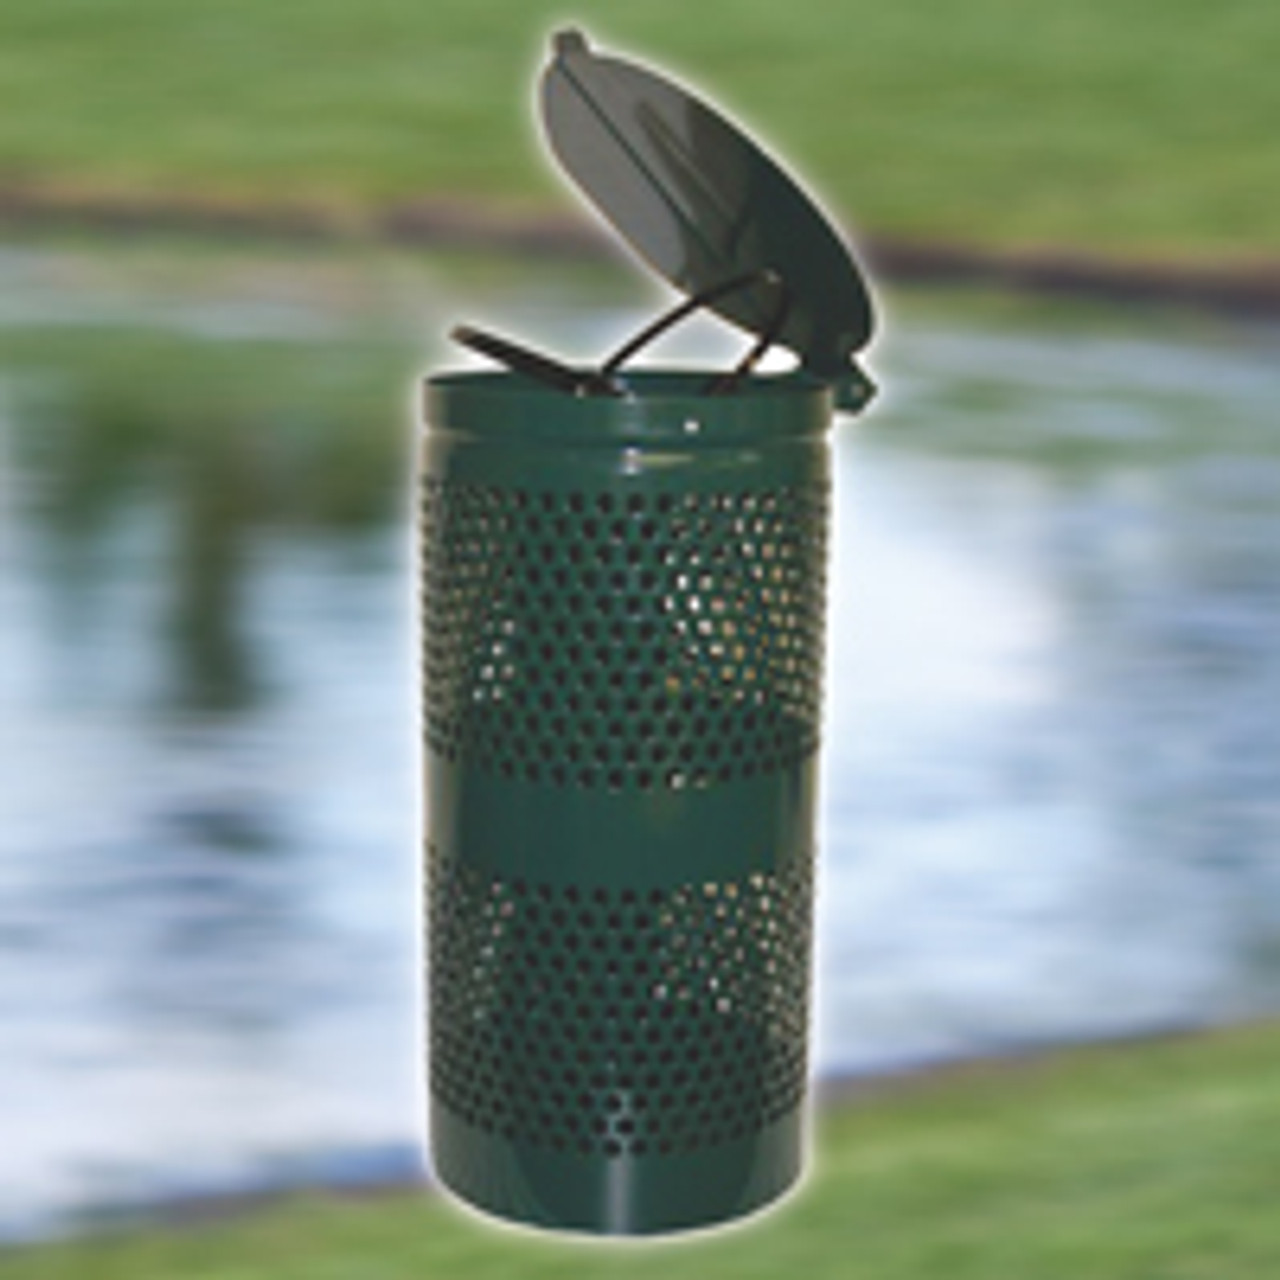 Dogipot Aluminum waste receptacle in green